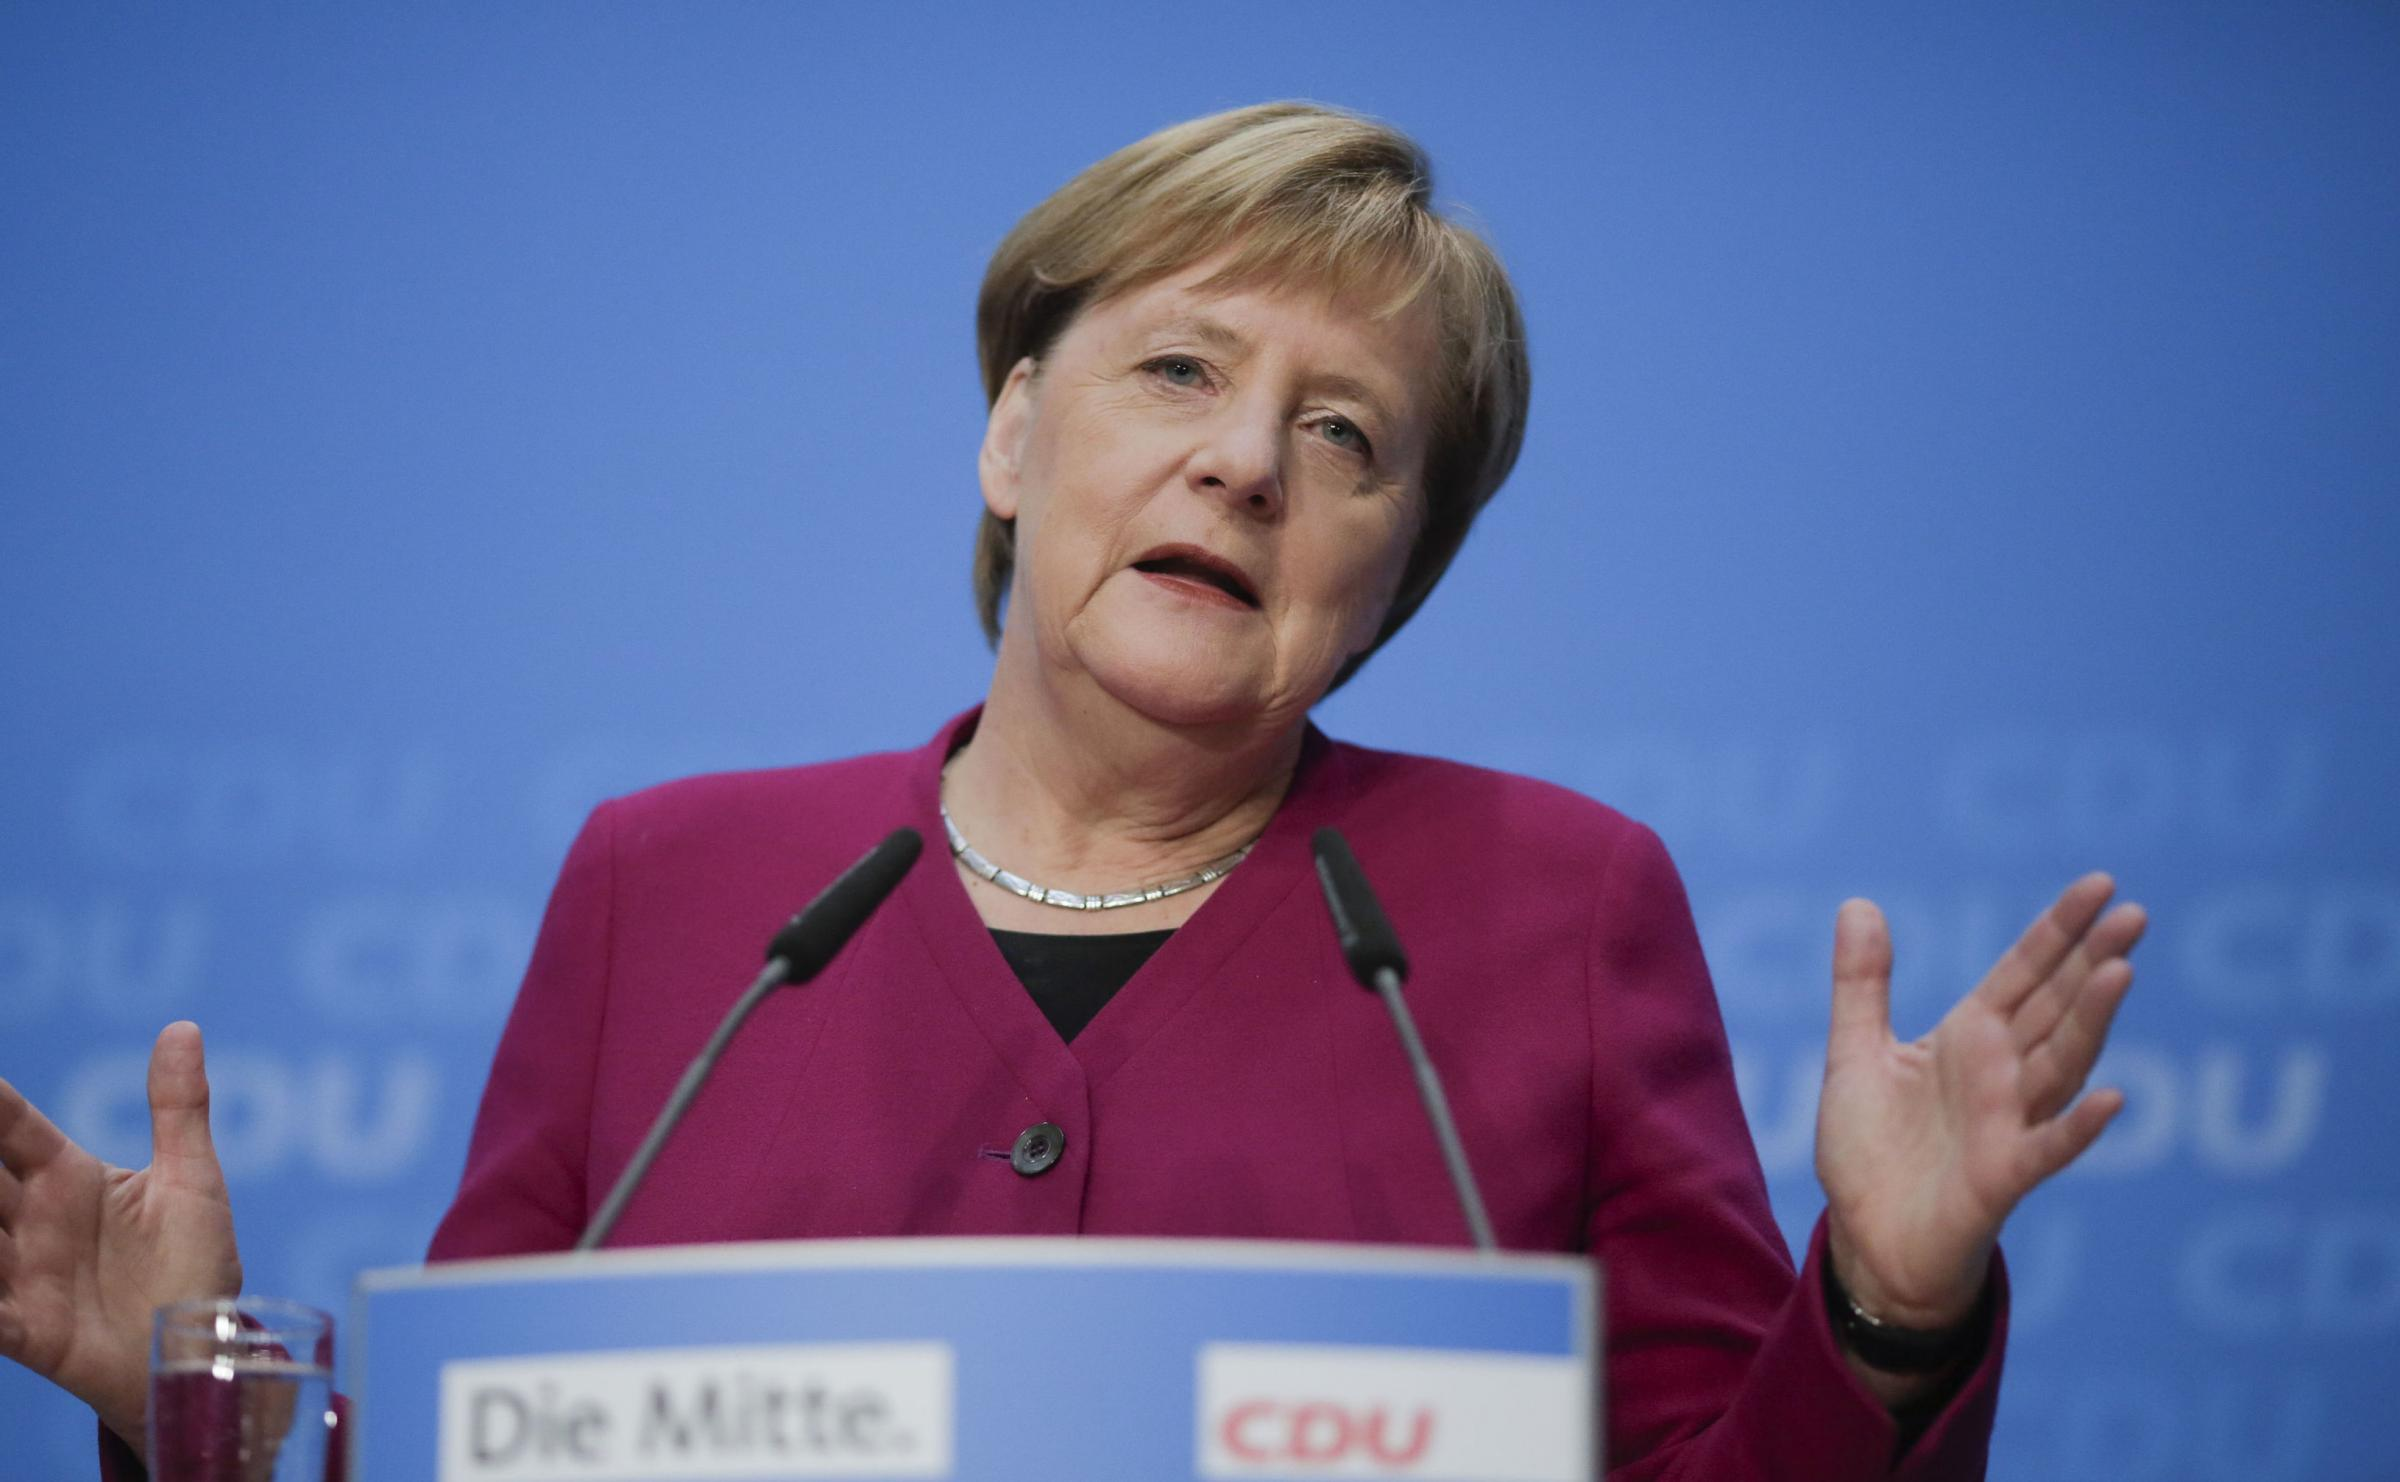 German politicians have had their personal data hacked and then dumped online